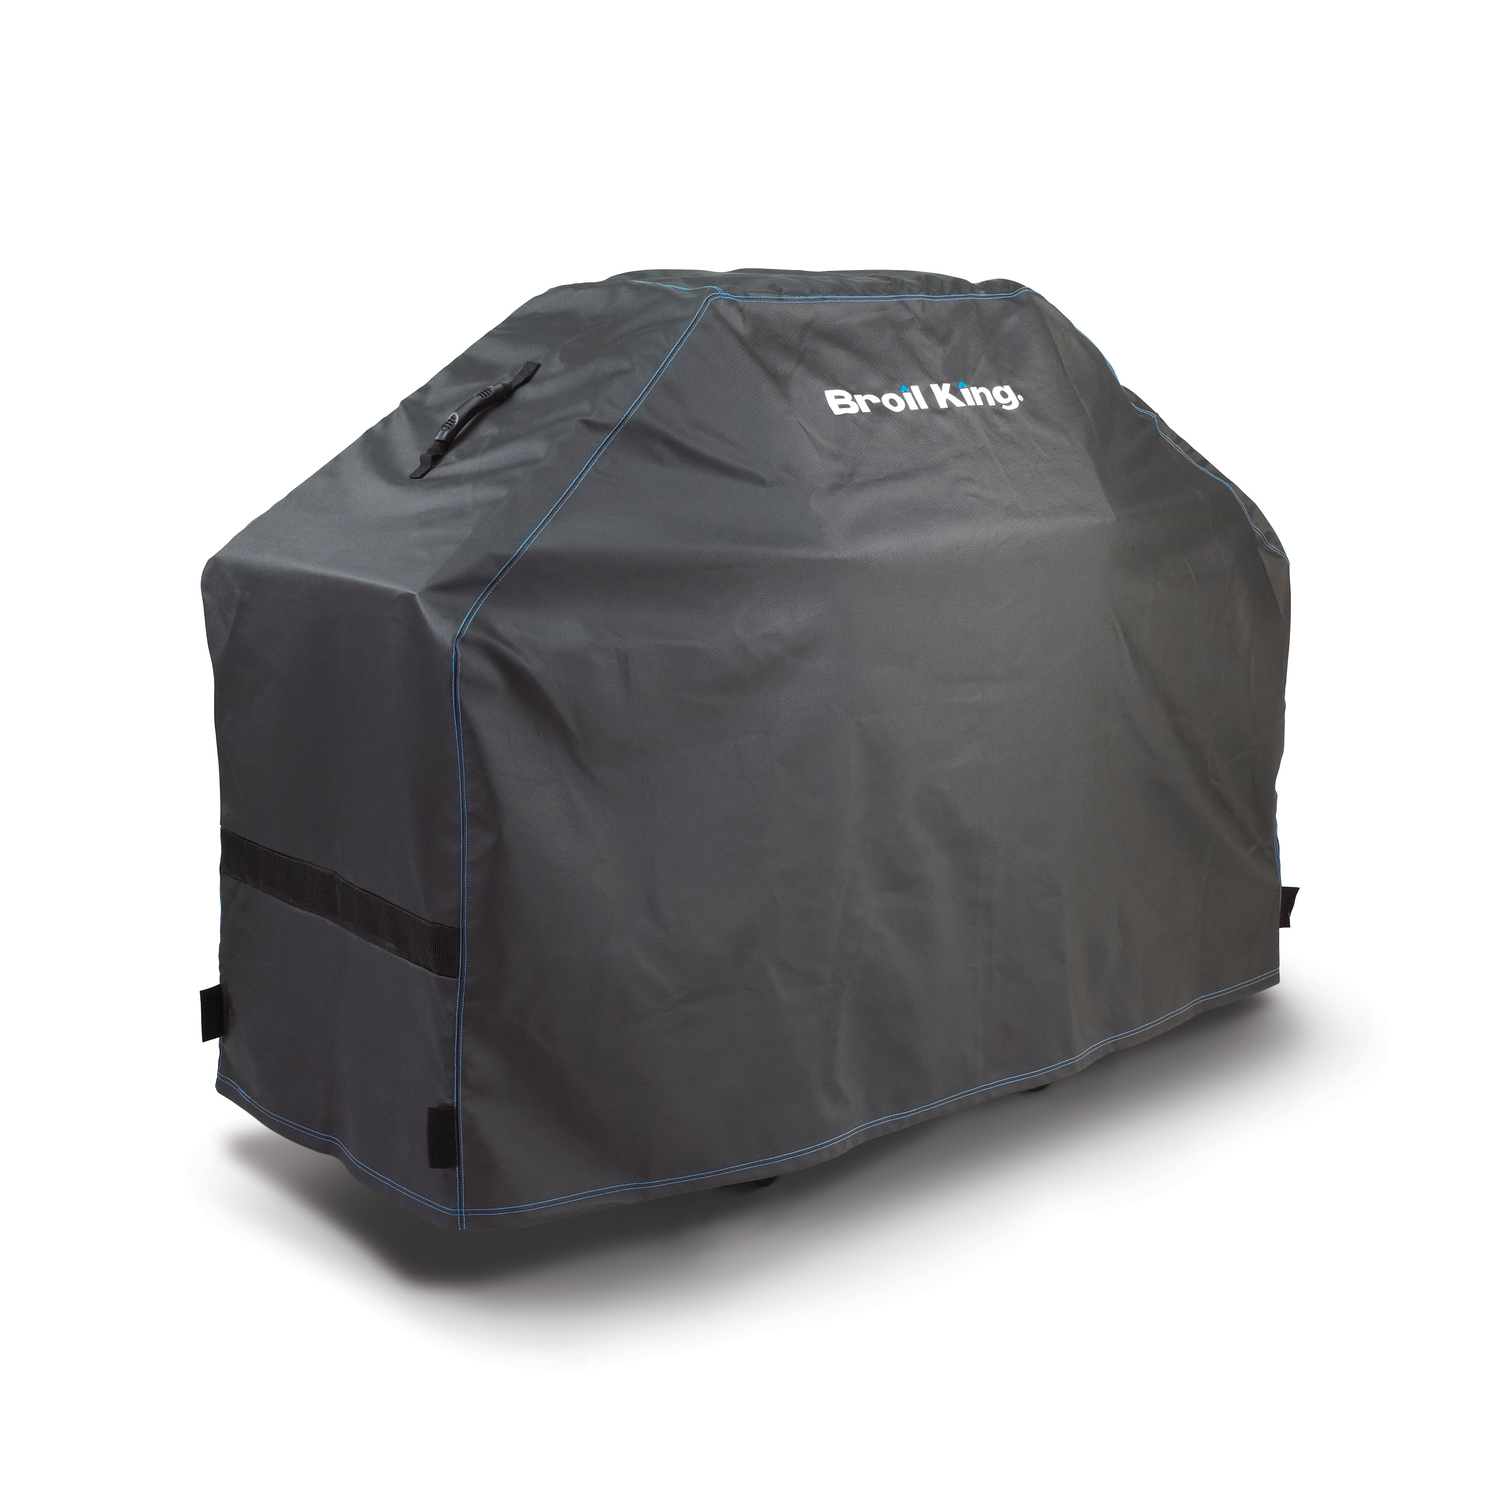 Broil King  Black  Grill Cover  47.5 in. H x 64 in. W x 23 in. D For Fits the Baron 590S other Baron